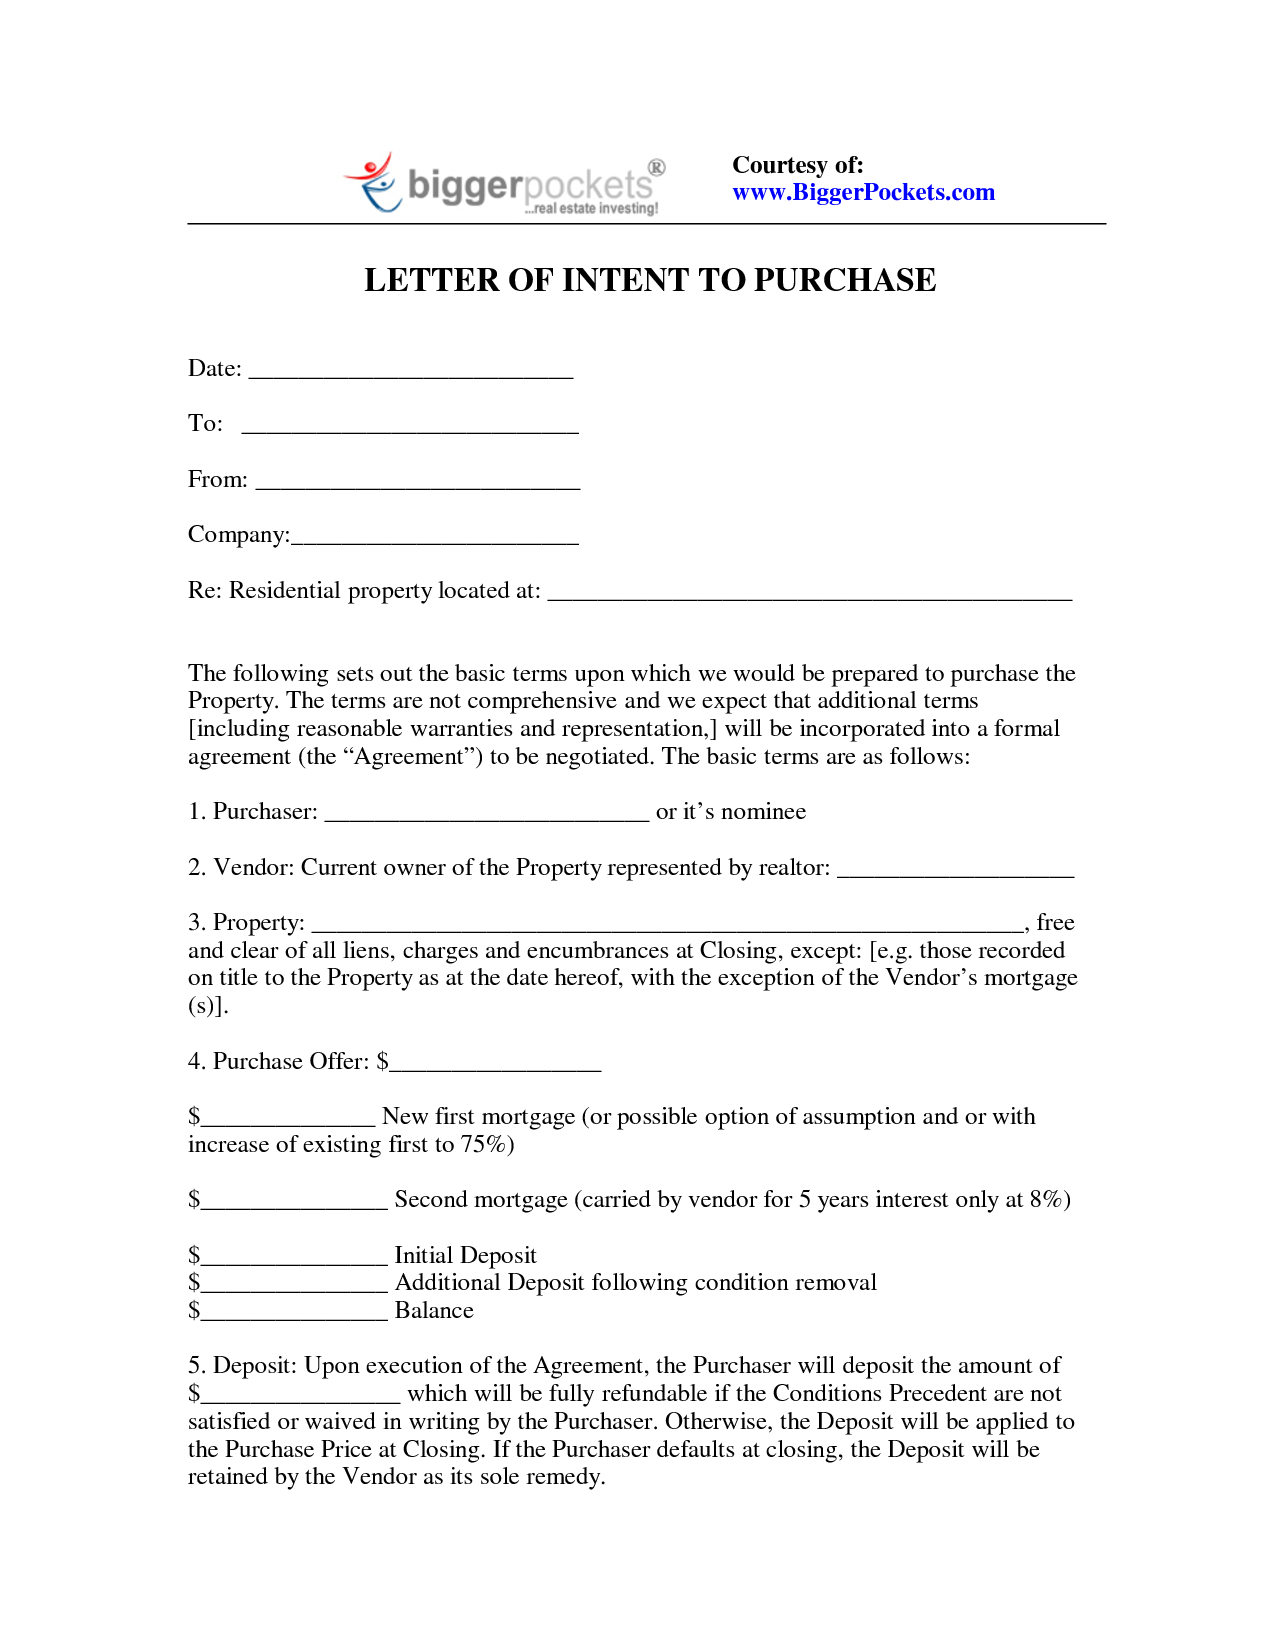 Letter Of Intent to Purchase Equipment Template - Letter Intent Sample to Purchase Equipment Ideas Best